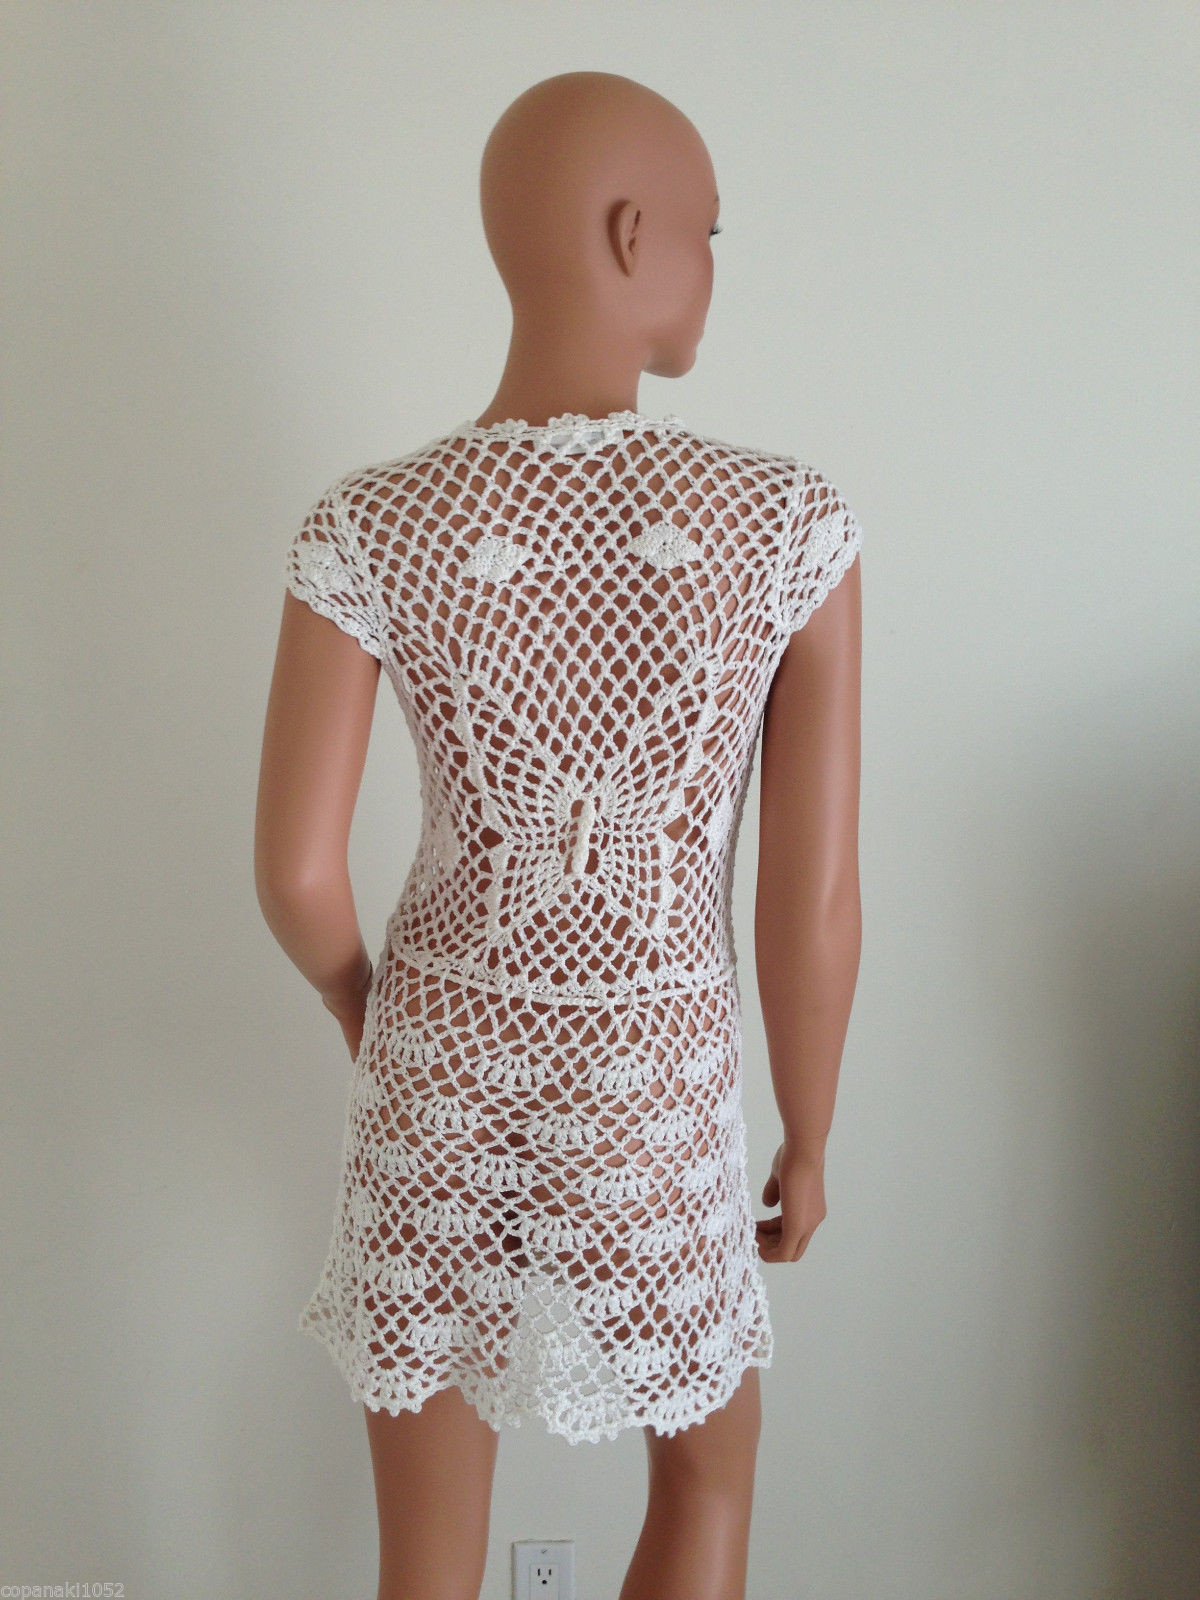 WHITE CROCHET DRESS sundress beach hippie boho hobo SMALL